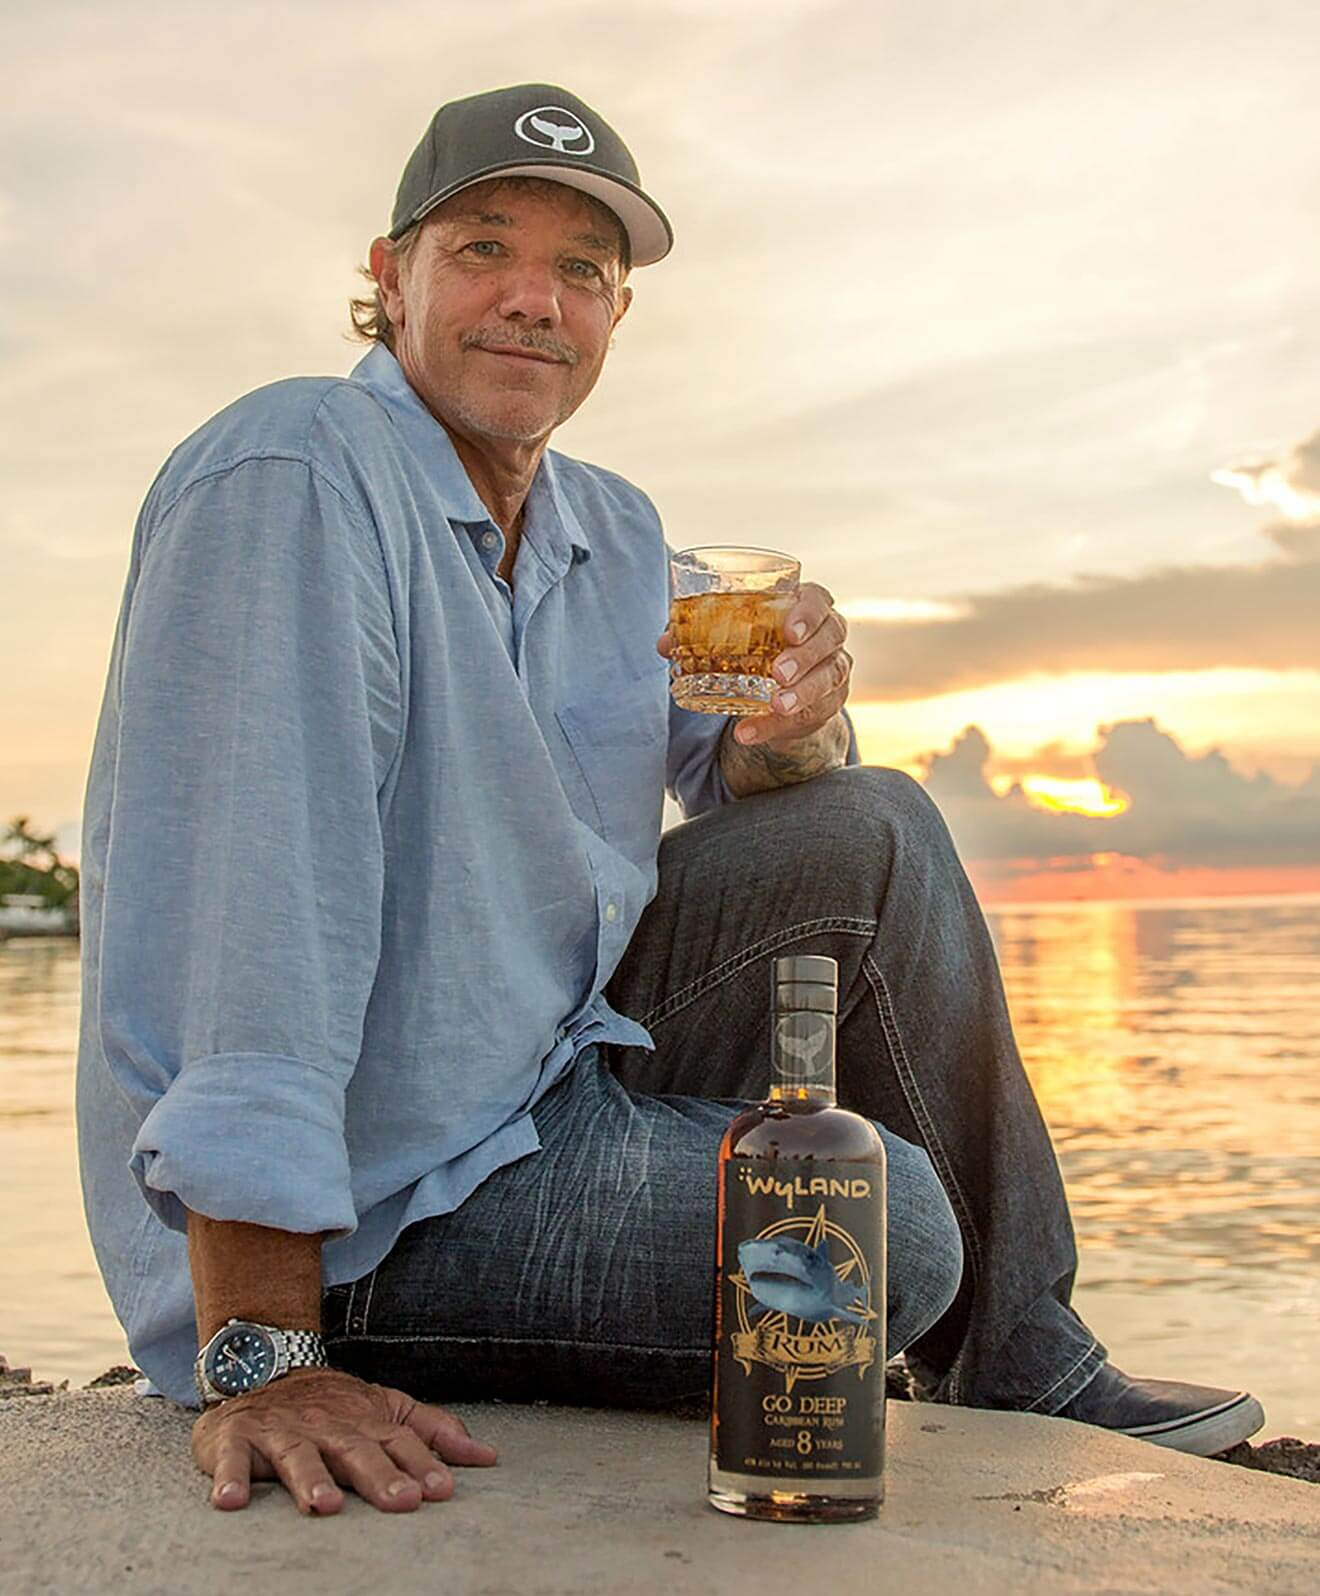 wyland and his new rum, beach and sunset